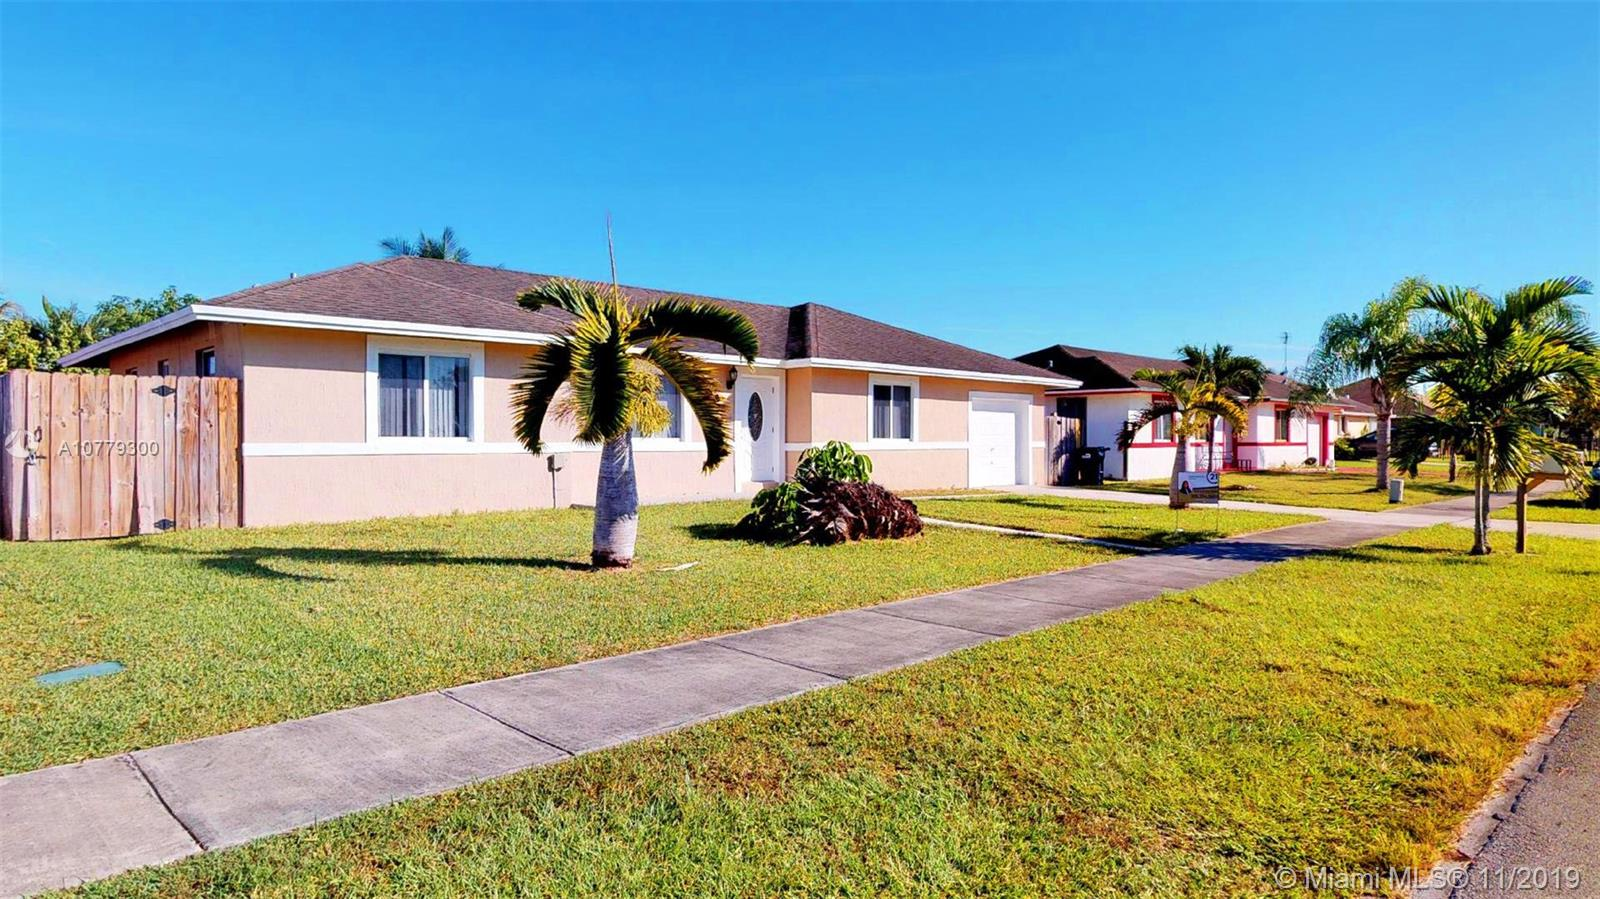 856 NW 3rd Ter, Florida City, FL 33034 - Florida City, FL real estate listing